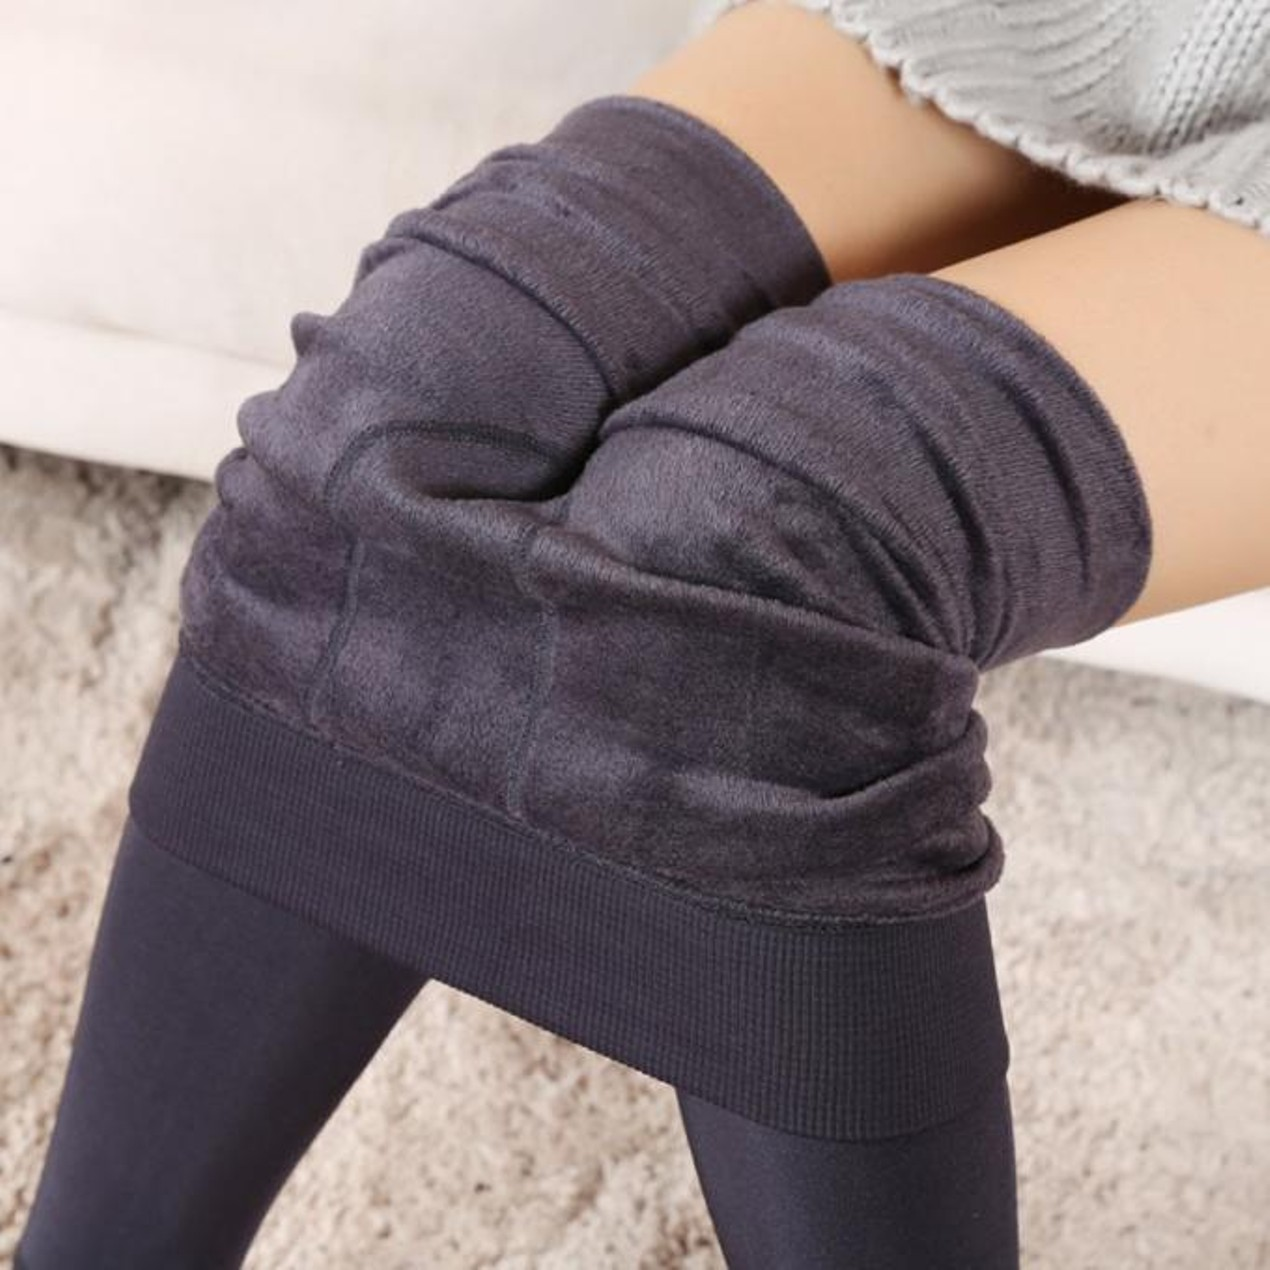 516c30f455f2be ... Women Winter Thick Warm Fleece Lined Thermal Stretchy Leggings Pants ...